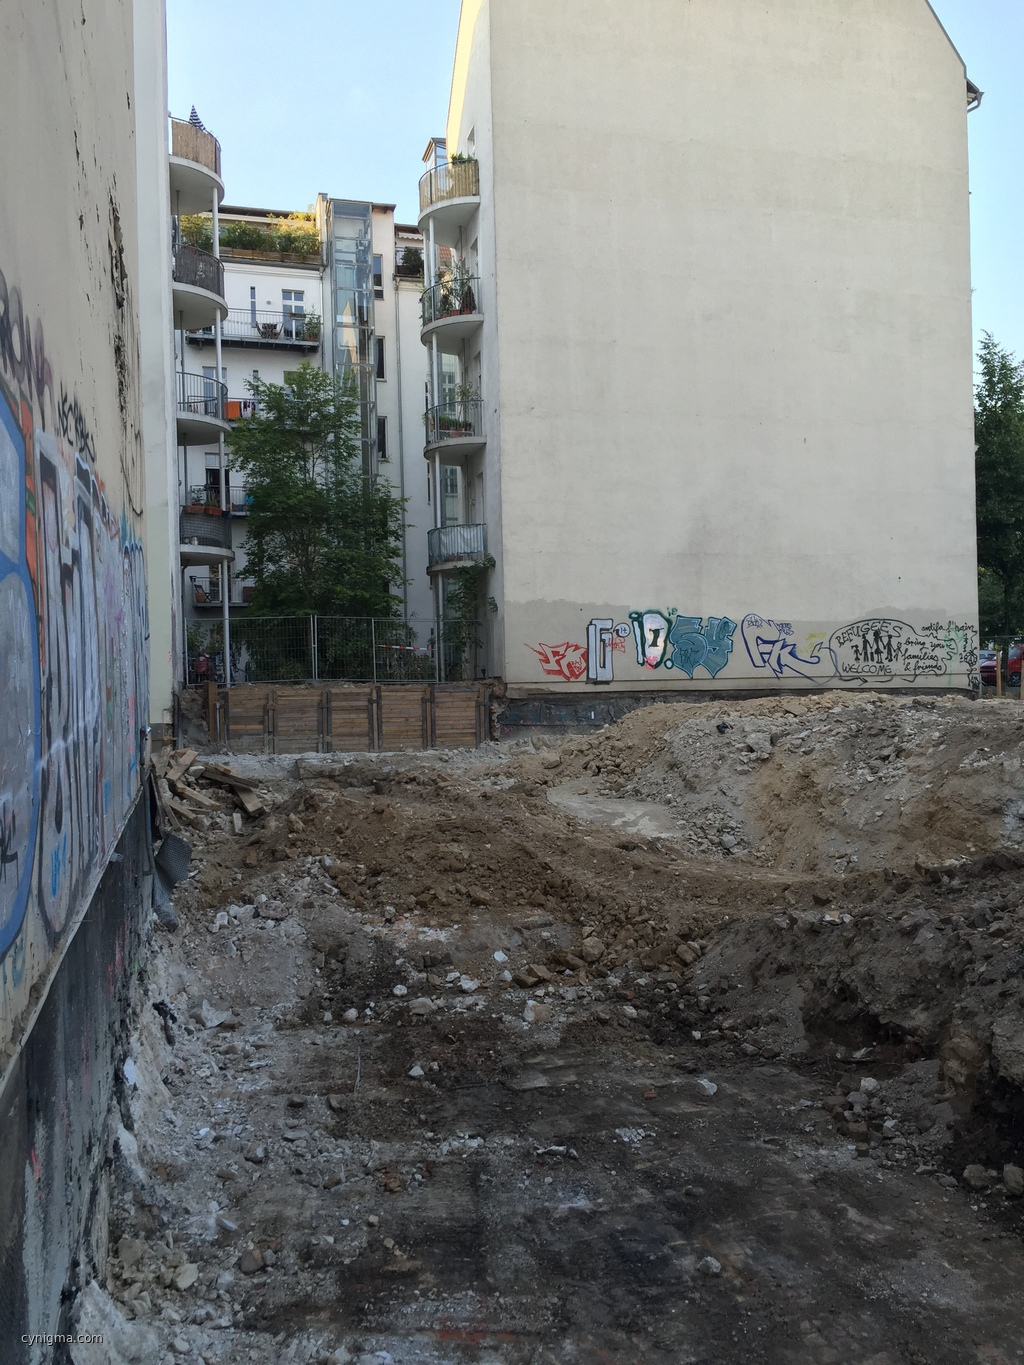 20150612-195904_news-from-the-Baustelle